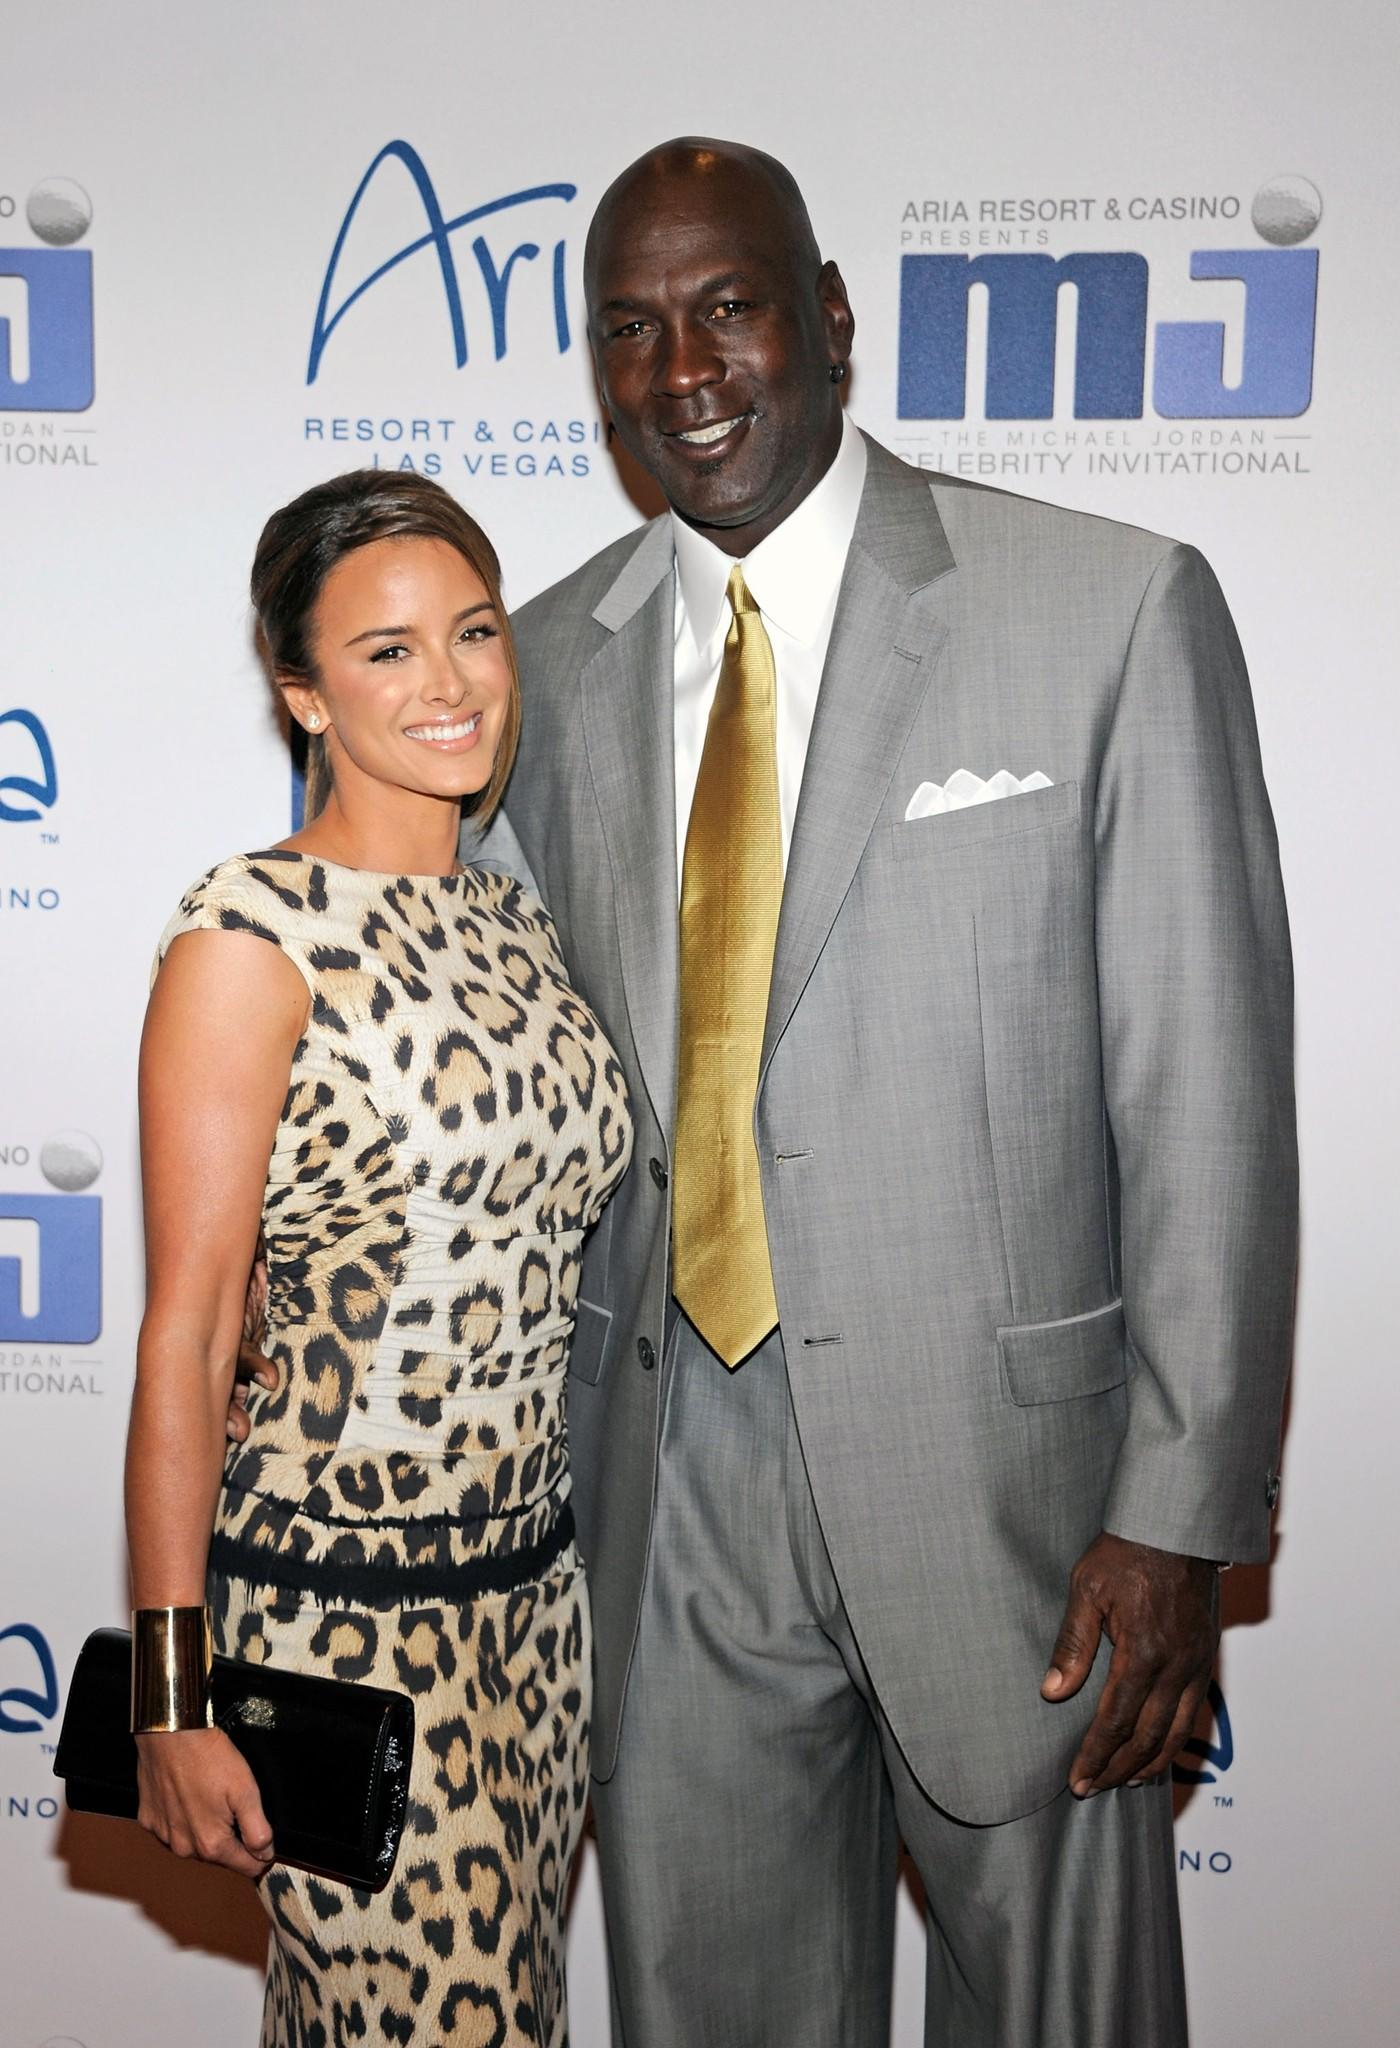 Michael Jordan with Yvette Prieto in 2011.